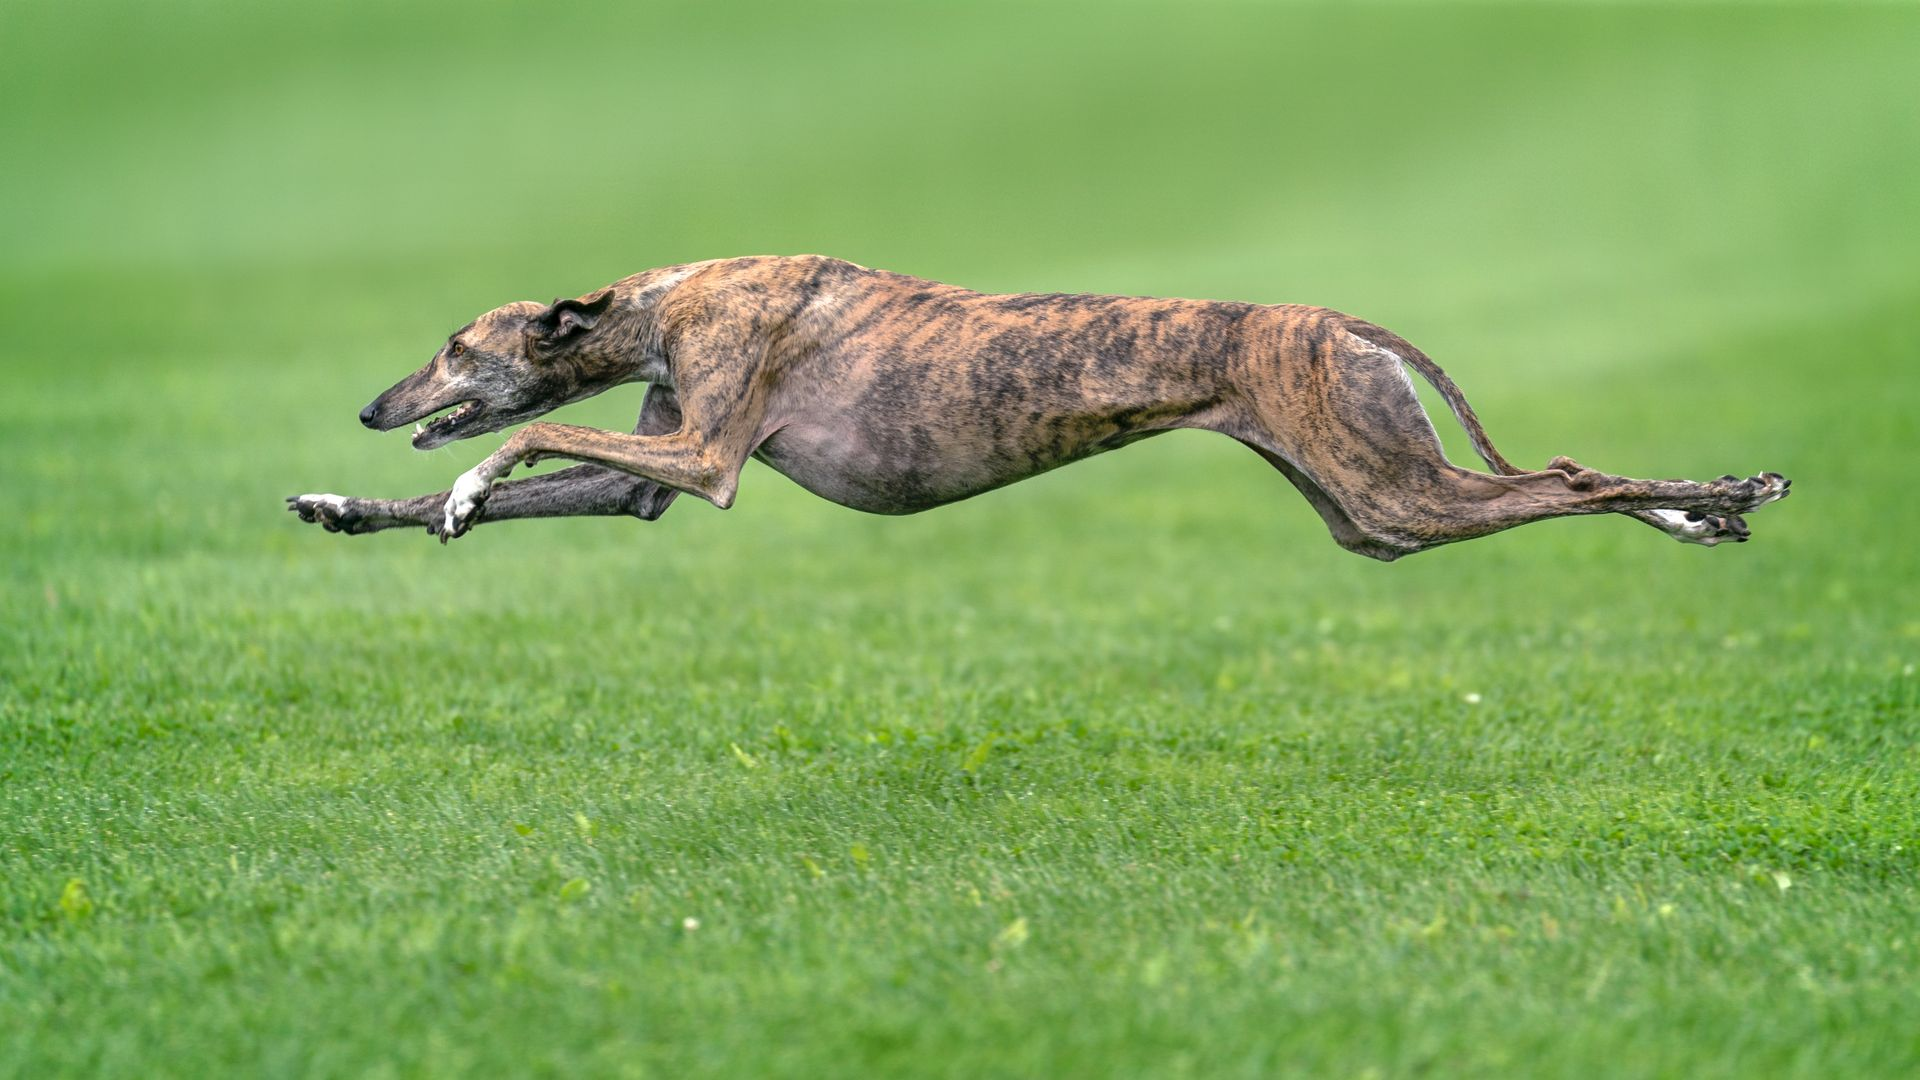 how fast can a greyhound run